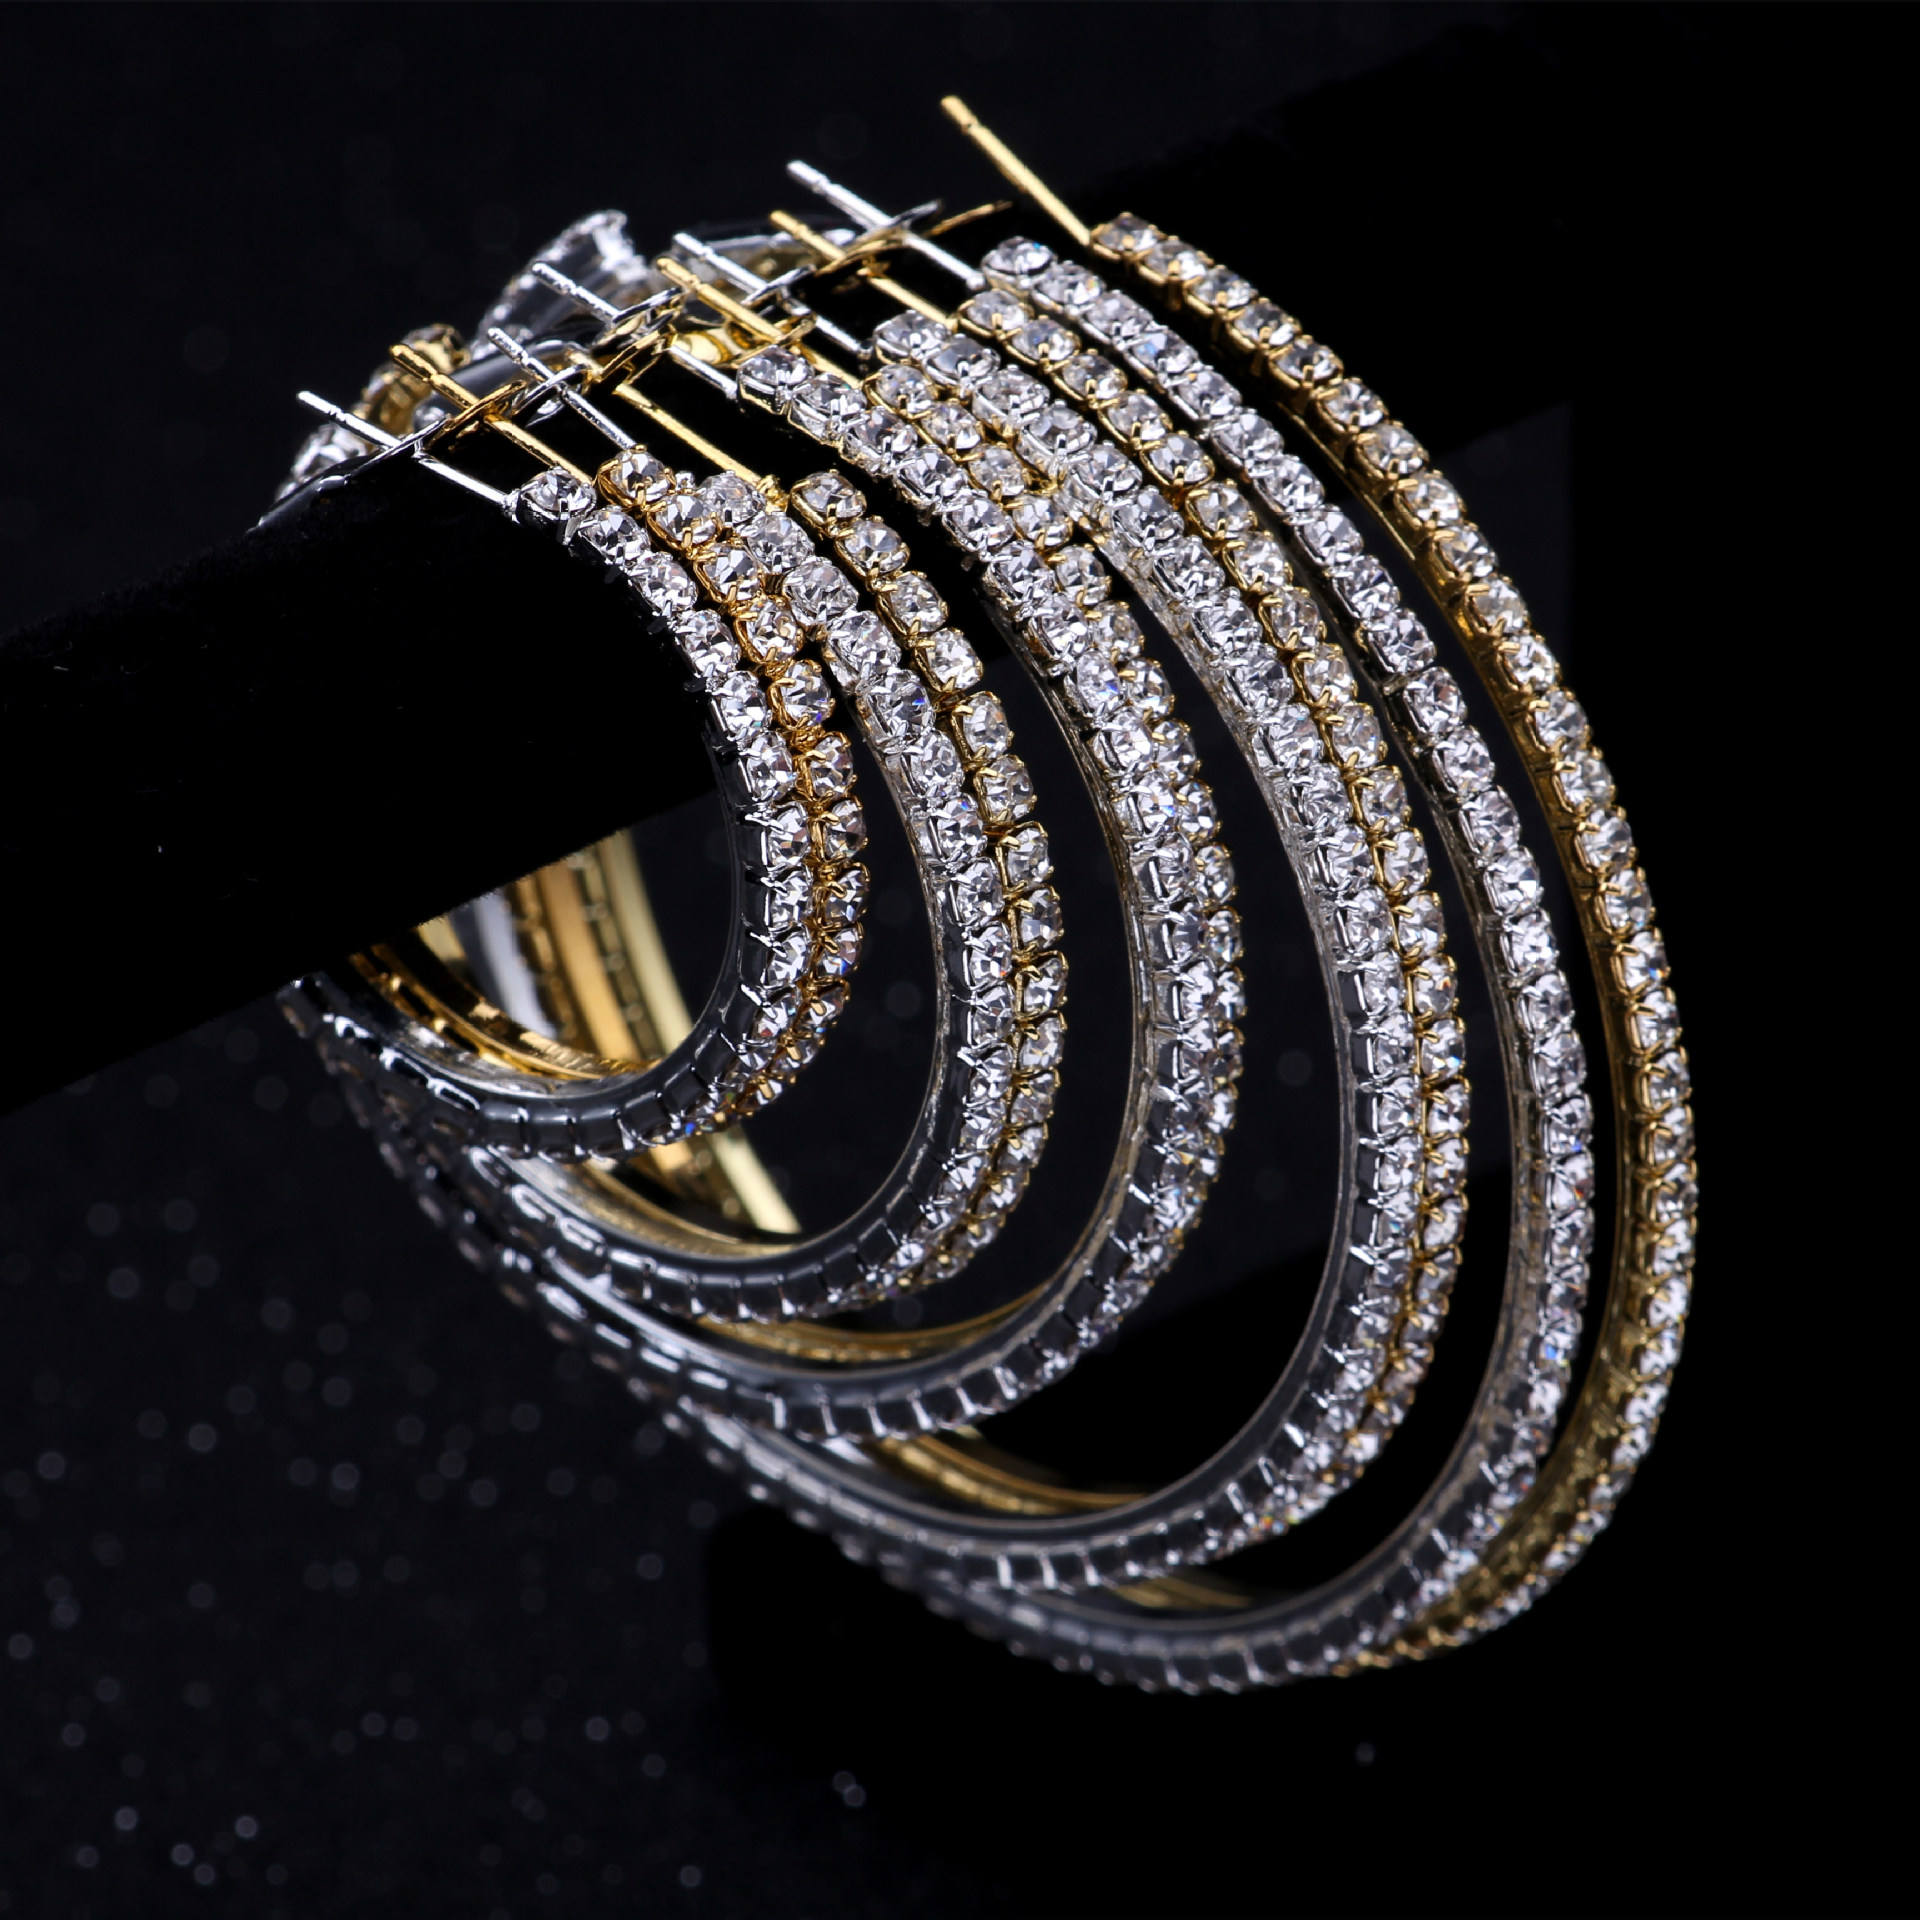 2-10 cm hoop big circle earrings fashion new arrival extra big large crystal hoop earrings party gold hoop earrings